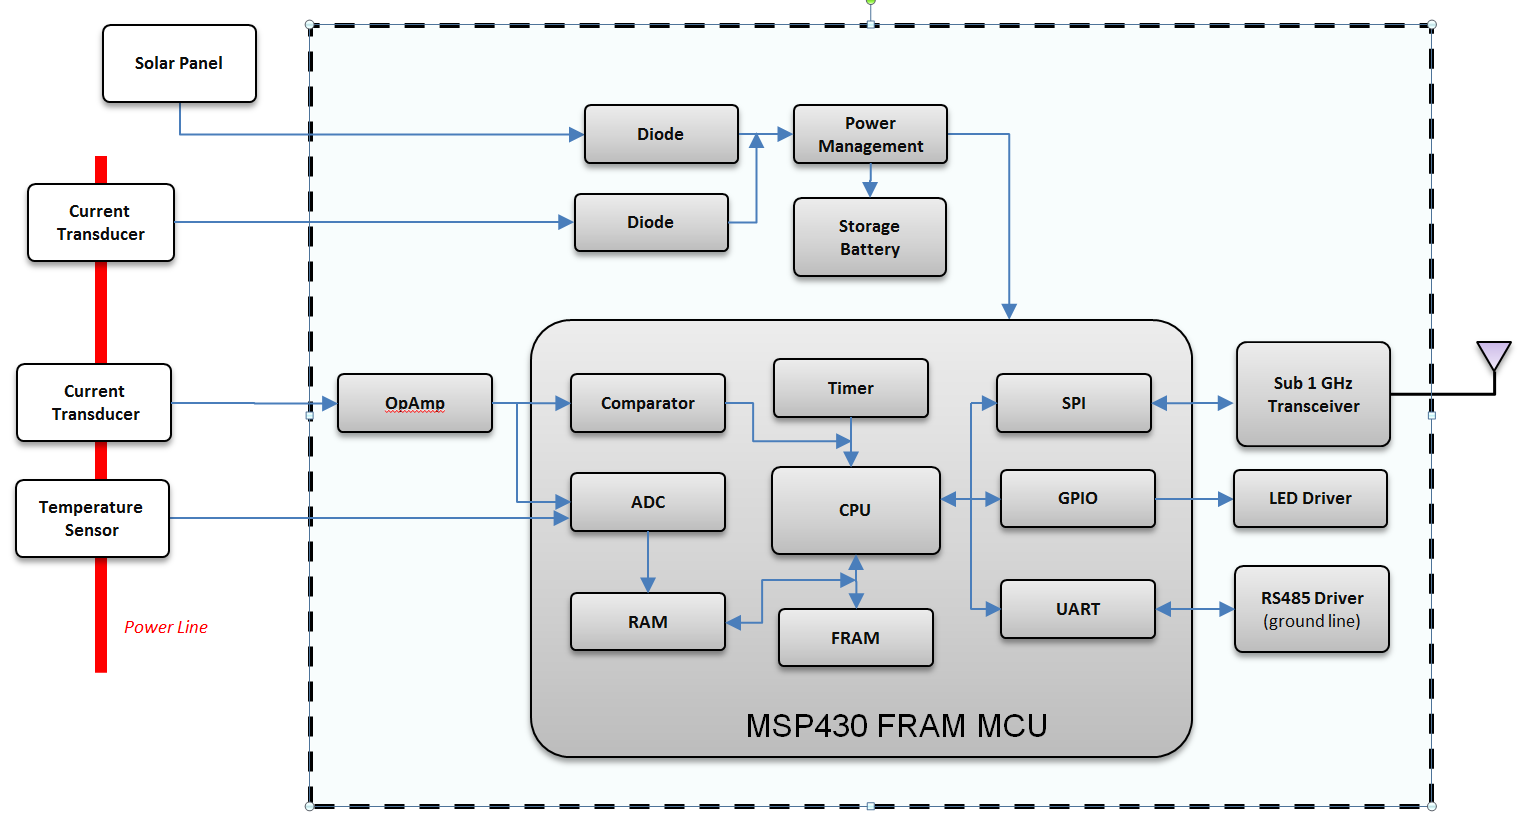 Smart Sensing With Ultra Low Power Mcus Part 2 Fault Year Block Diagram Figure Functional Of A Indicator Based On The Msp430 Fram Mcu